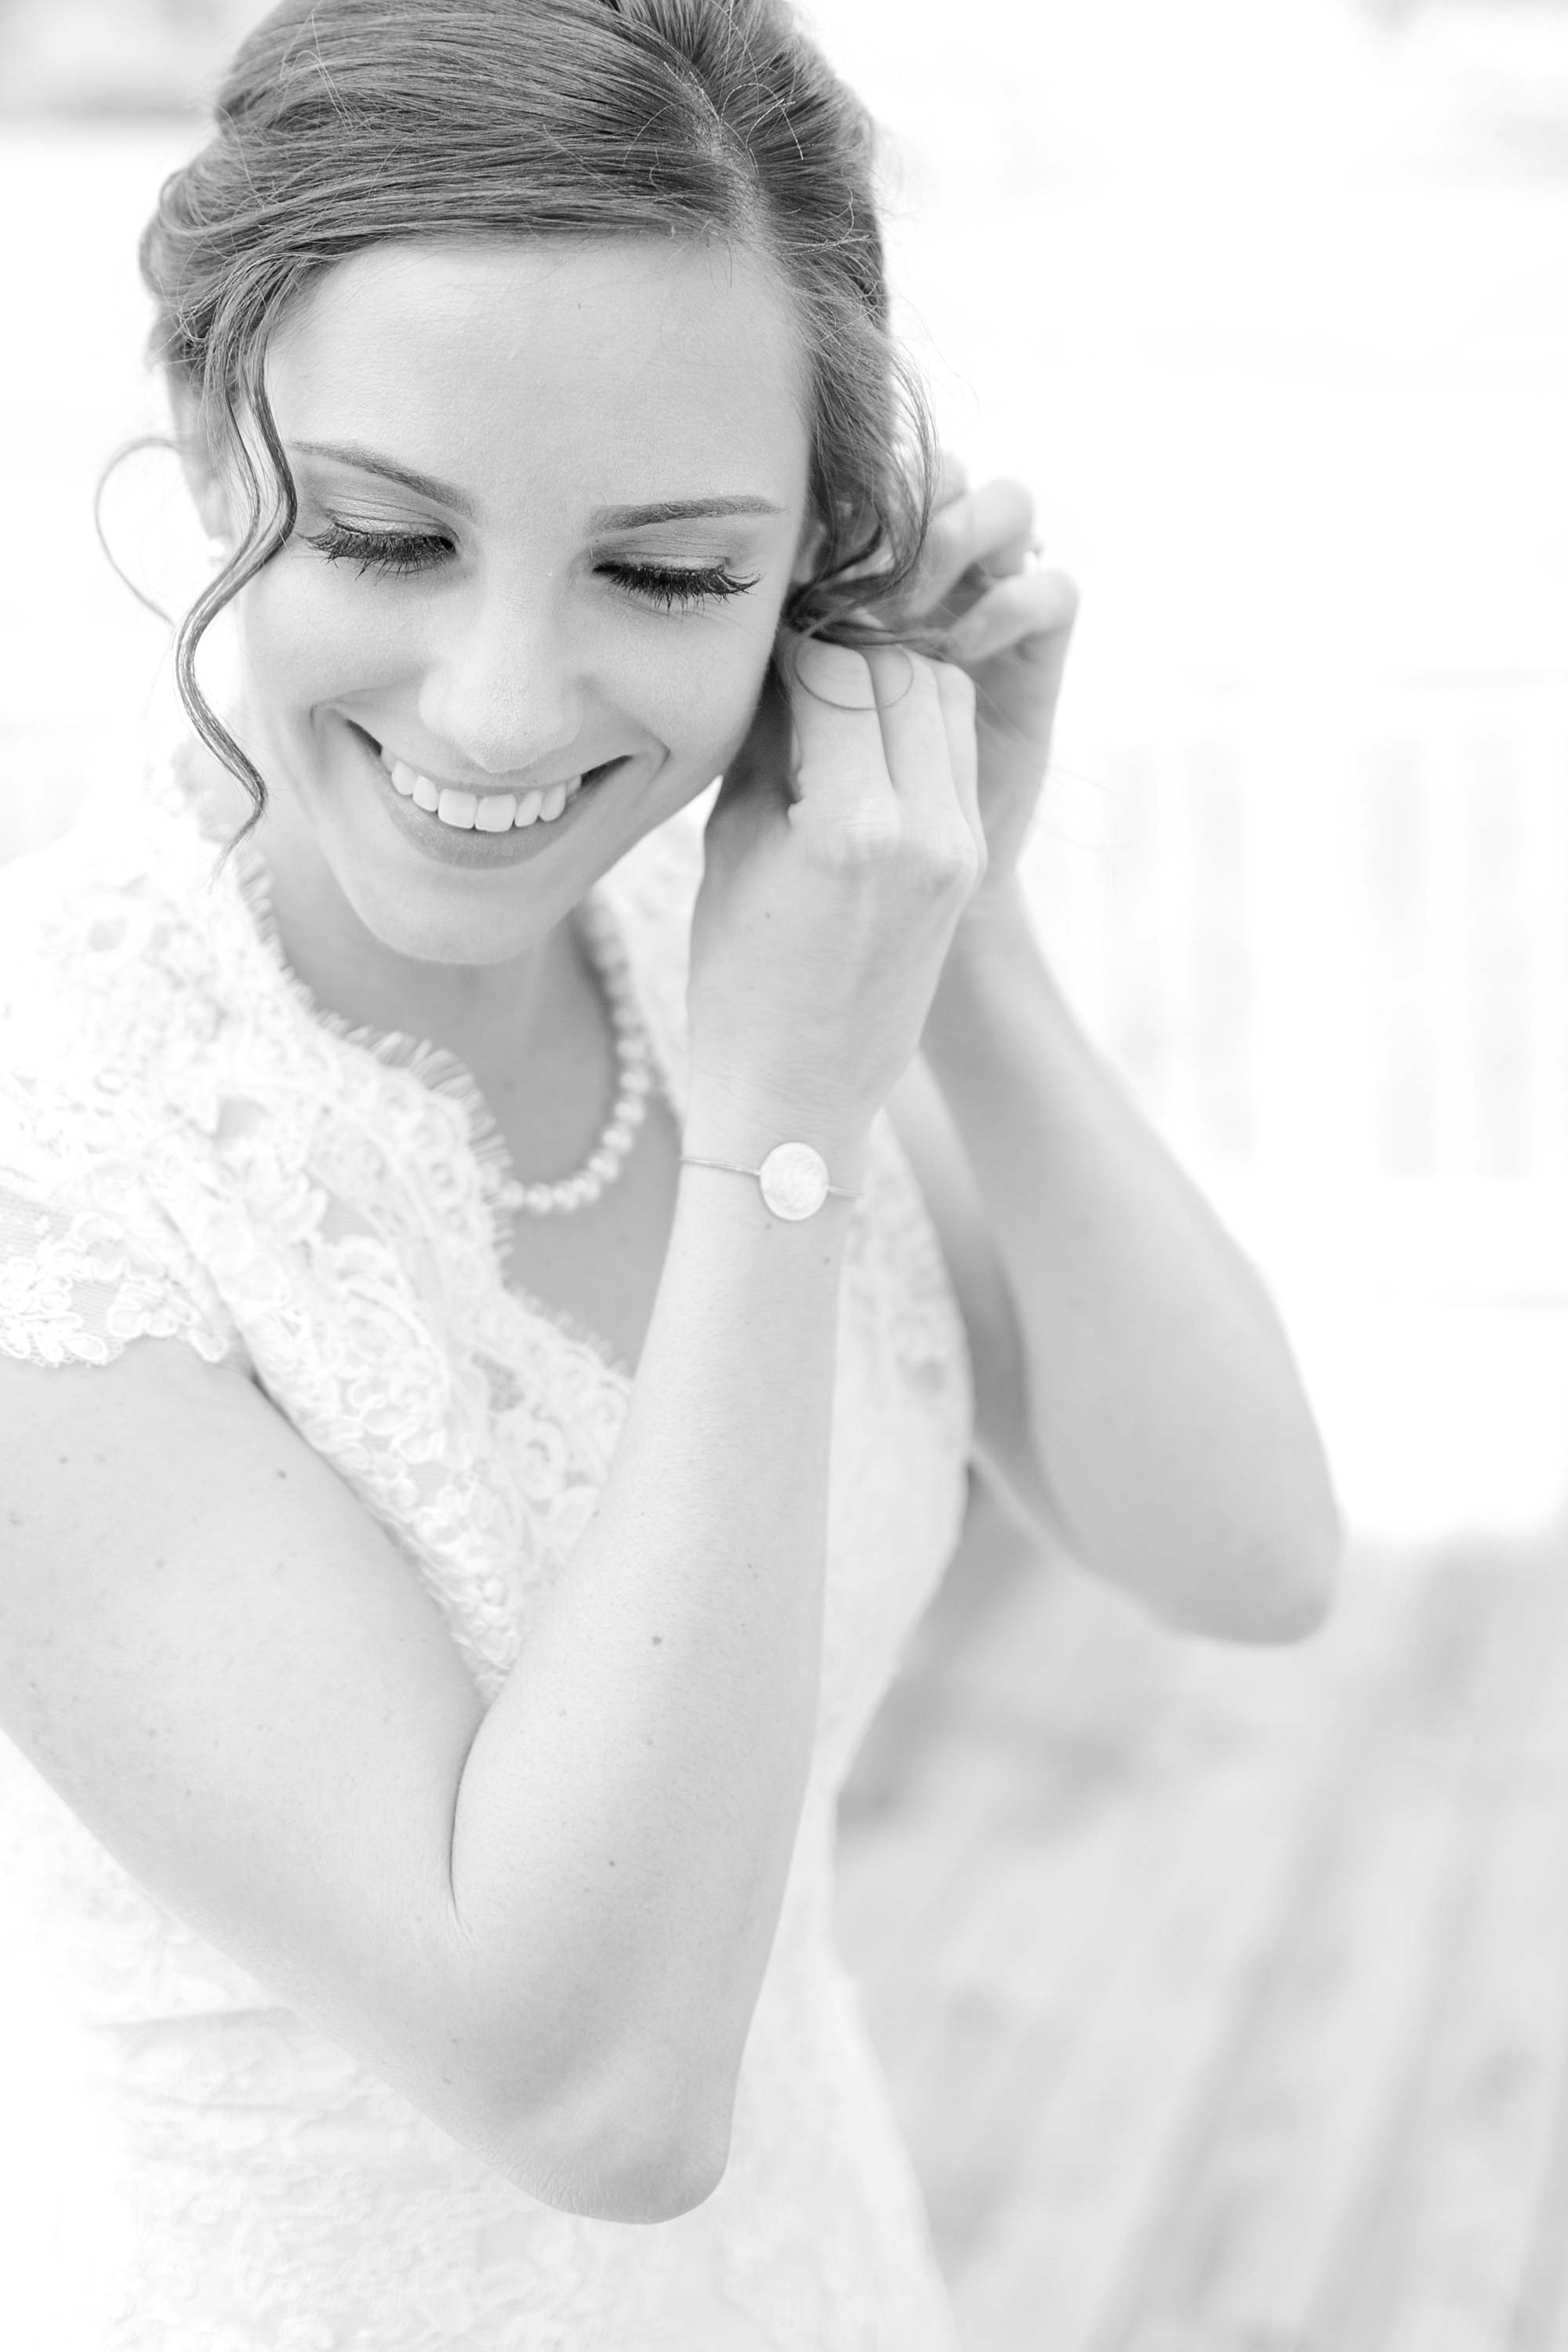 Bird 1. Getting Ready-184_anna grace photography baltimore maryland wedding photographer chanteclaire wedding photo.jpg